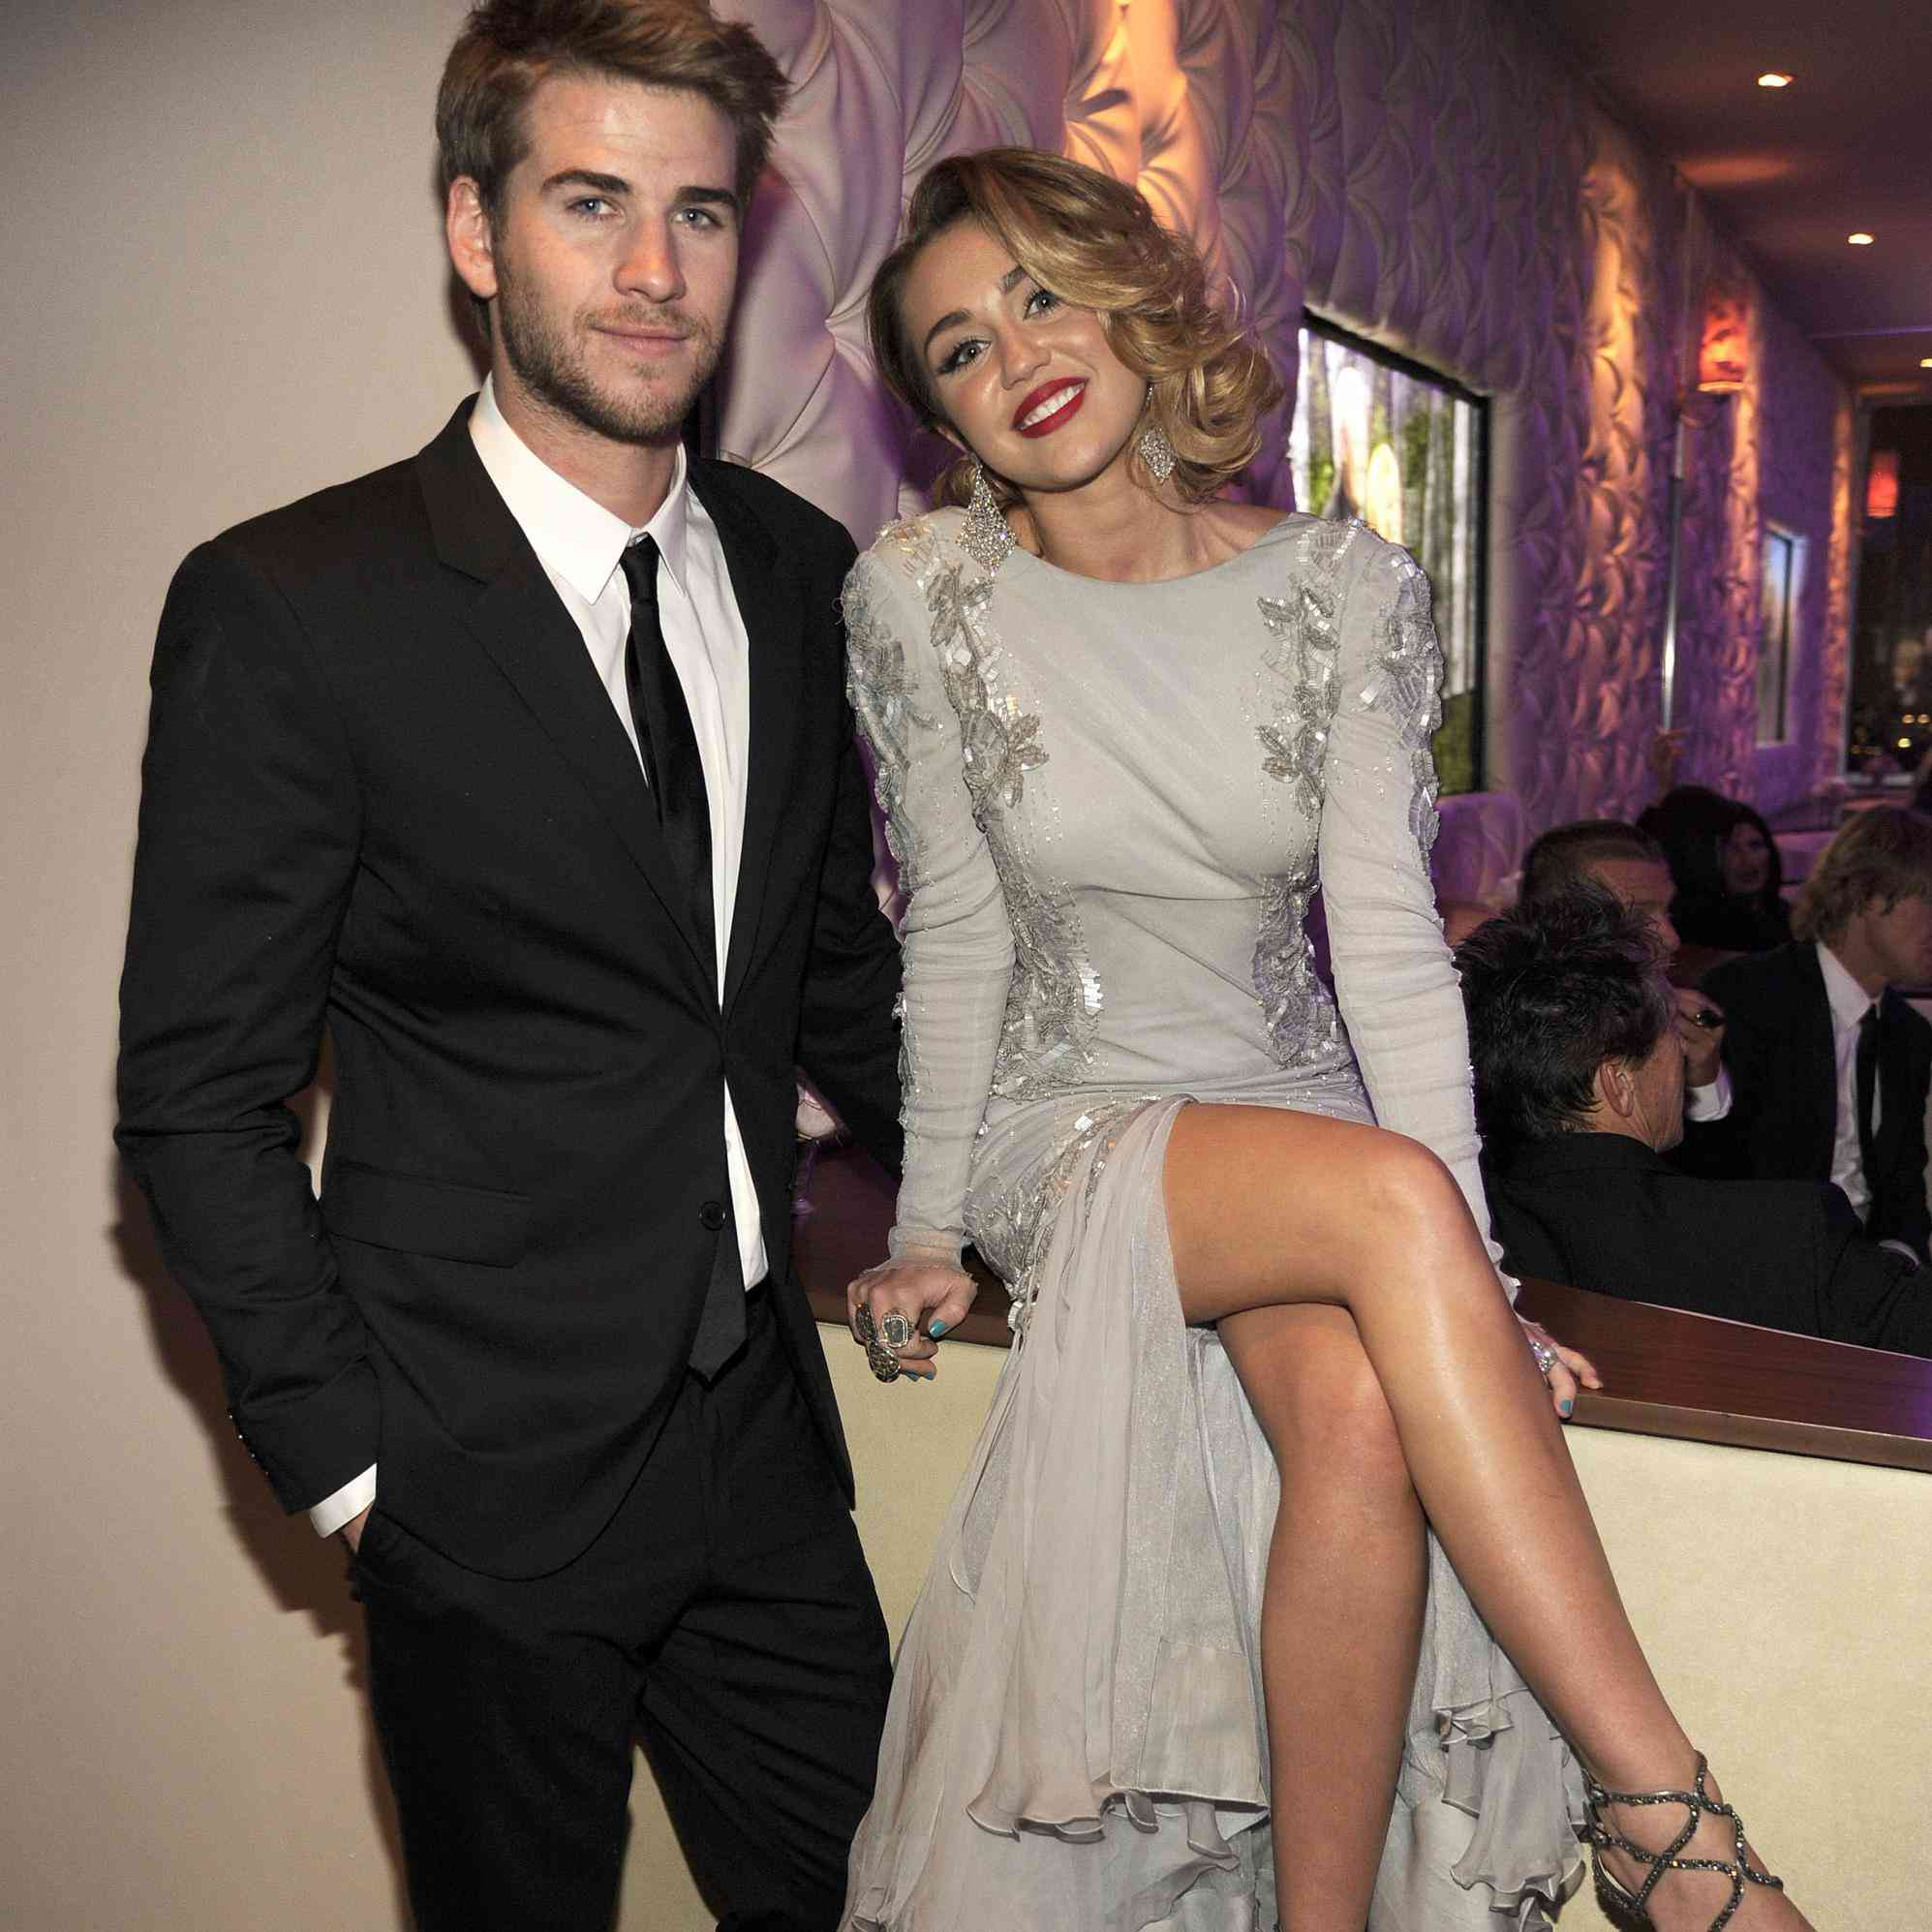 Miley Cyrus Wedding.Everything We Know About Miley Cyrus And Liam Hemsworth S Super